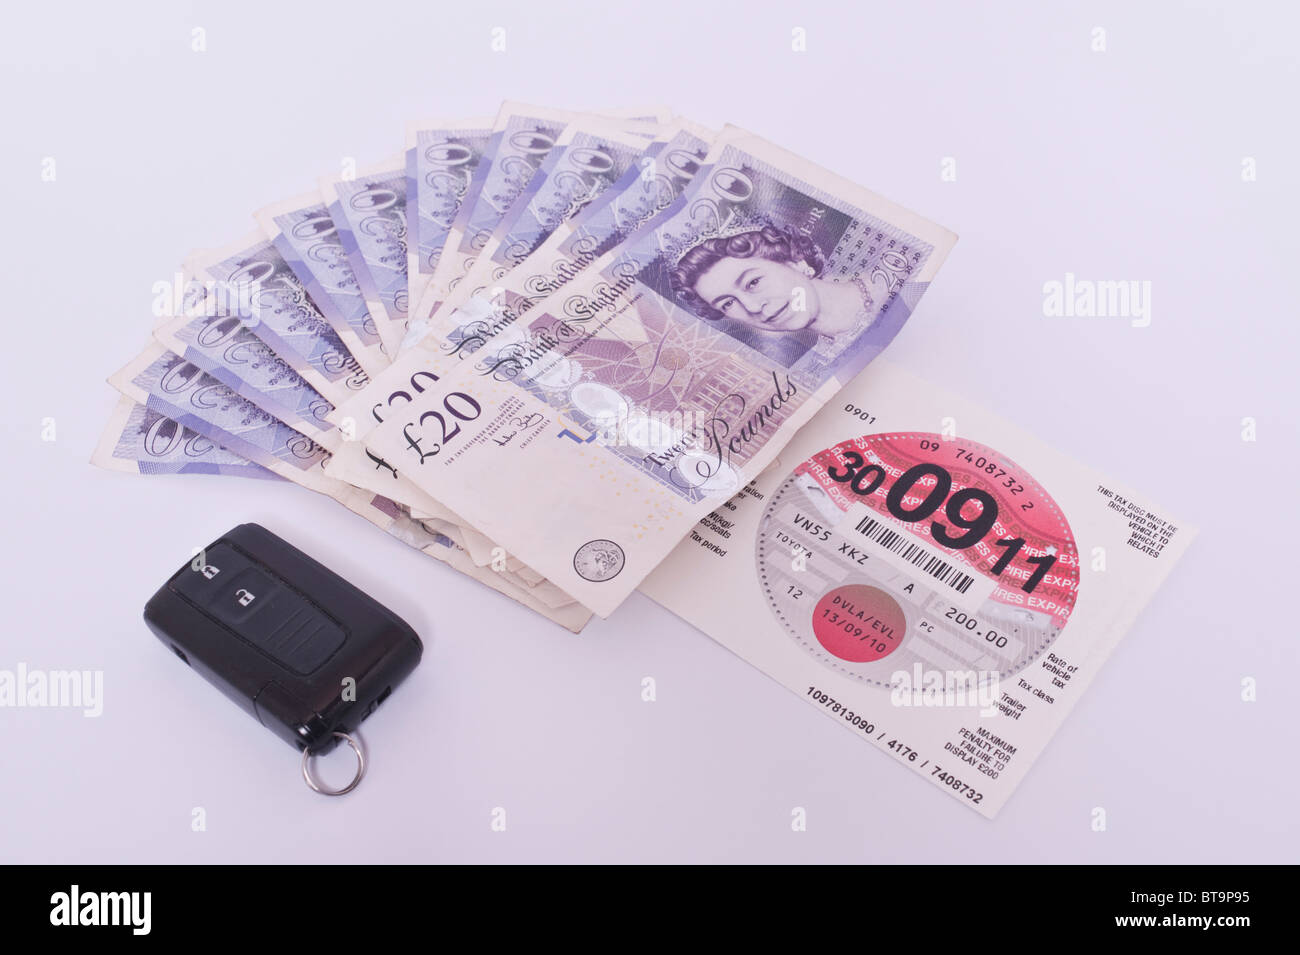 A car tax disc vehicle license with £200 in cash and car keys on a white background - Stock Image